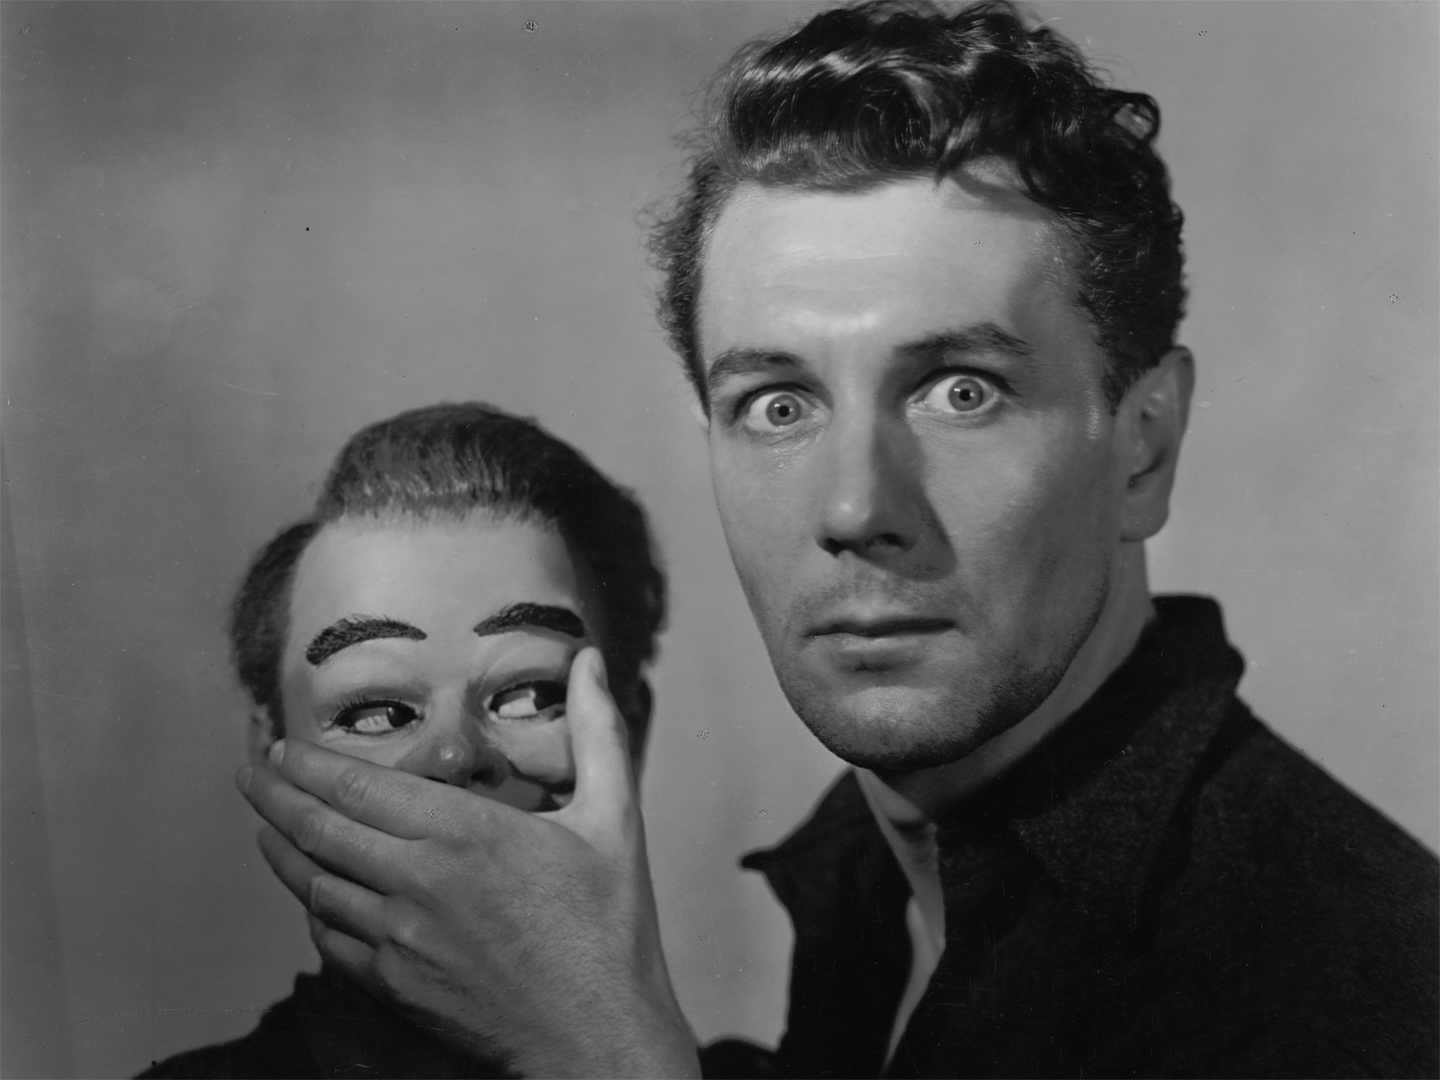 Maxwell Frere (Michael Redgrave) and his dummy Hugo Fritch in The Ventriloquist's Dummy episode in Dead of Night (1945)